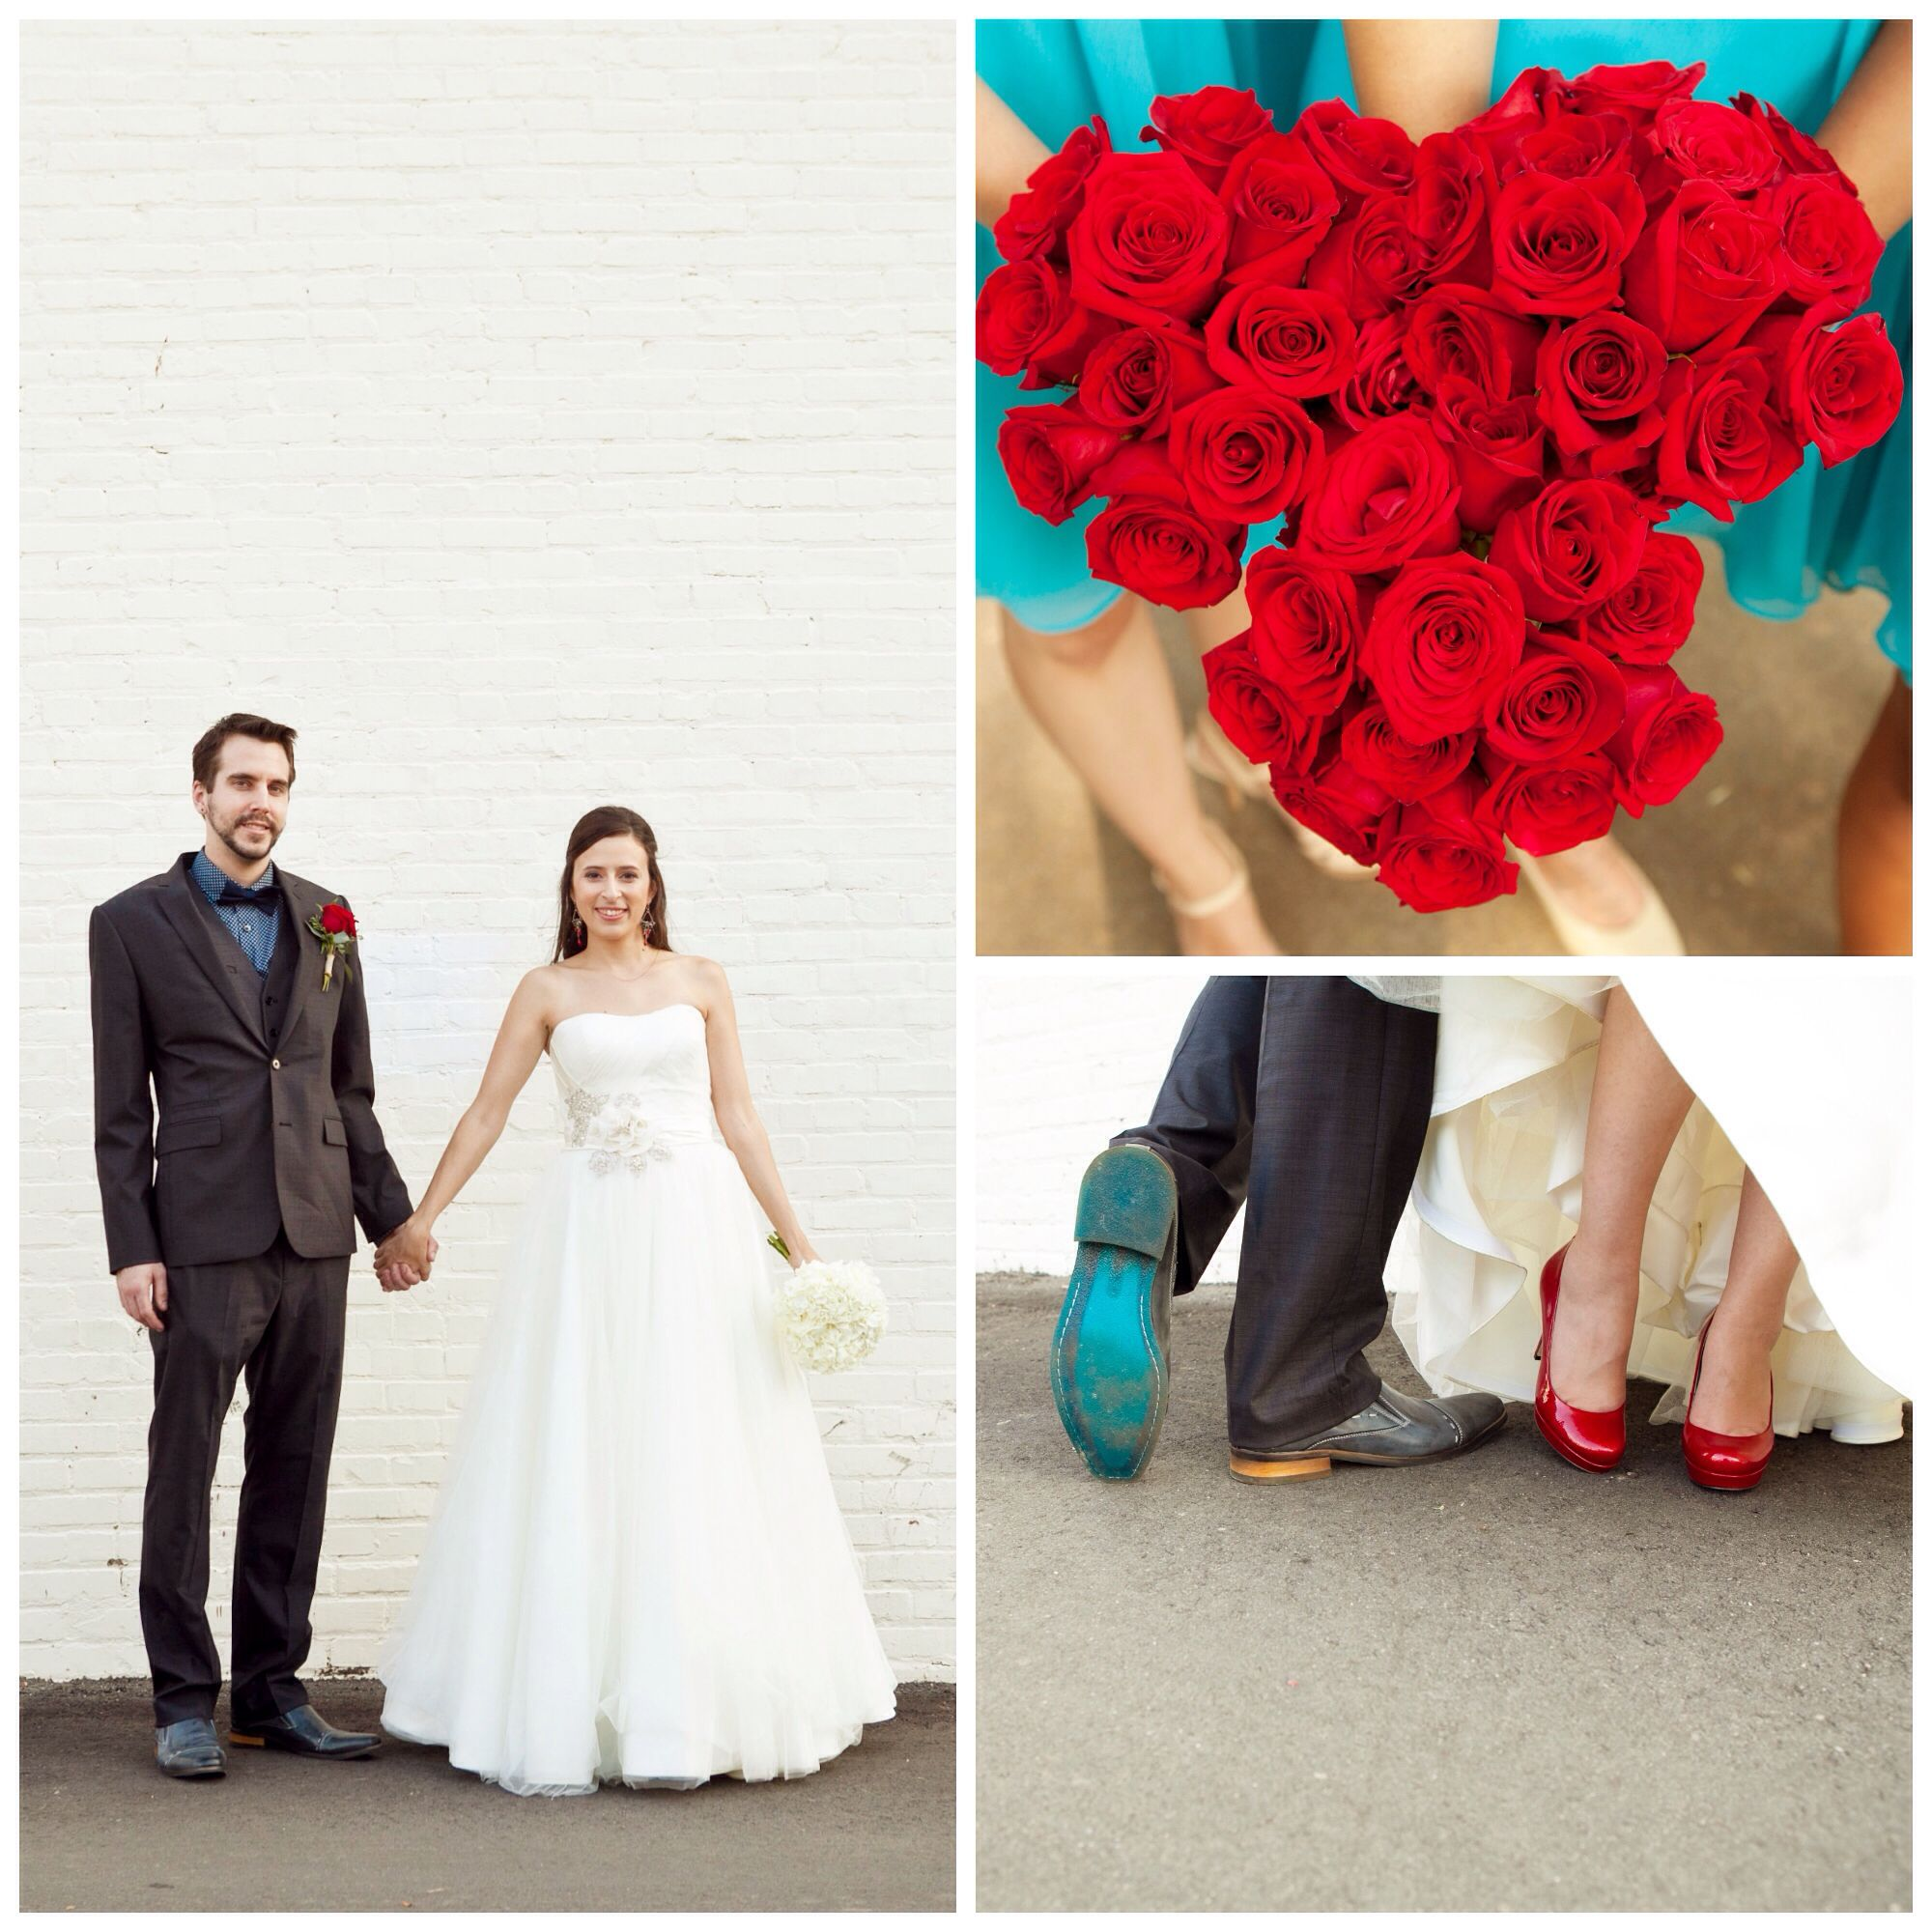 Teal and Red Wedding | Teal & Red Wedding | Pinterest | Red wedding ...